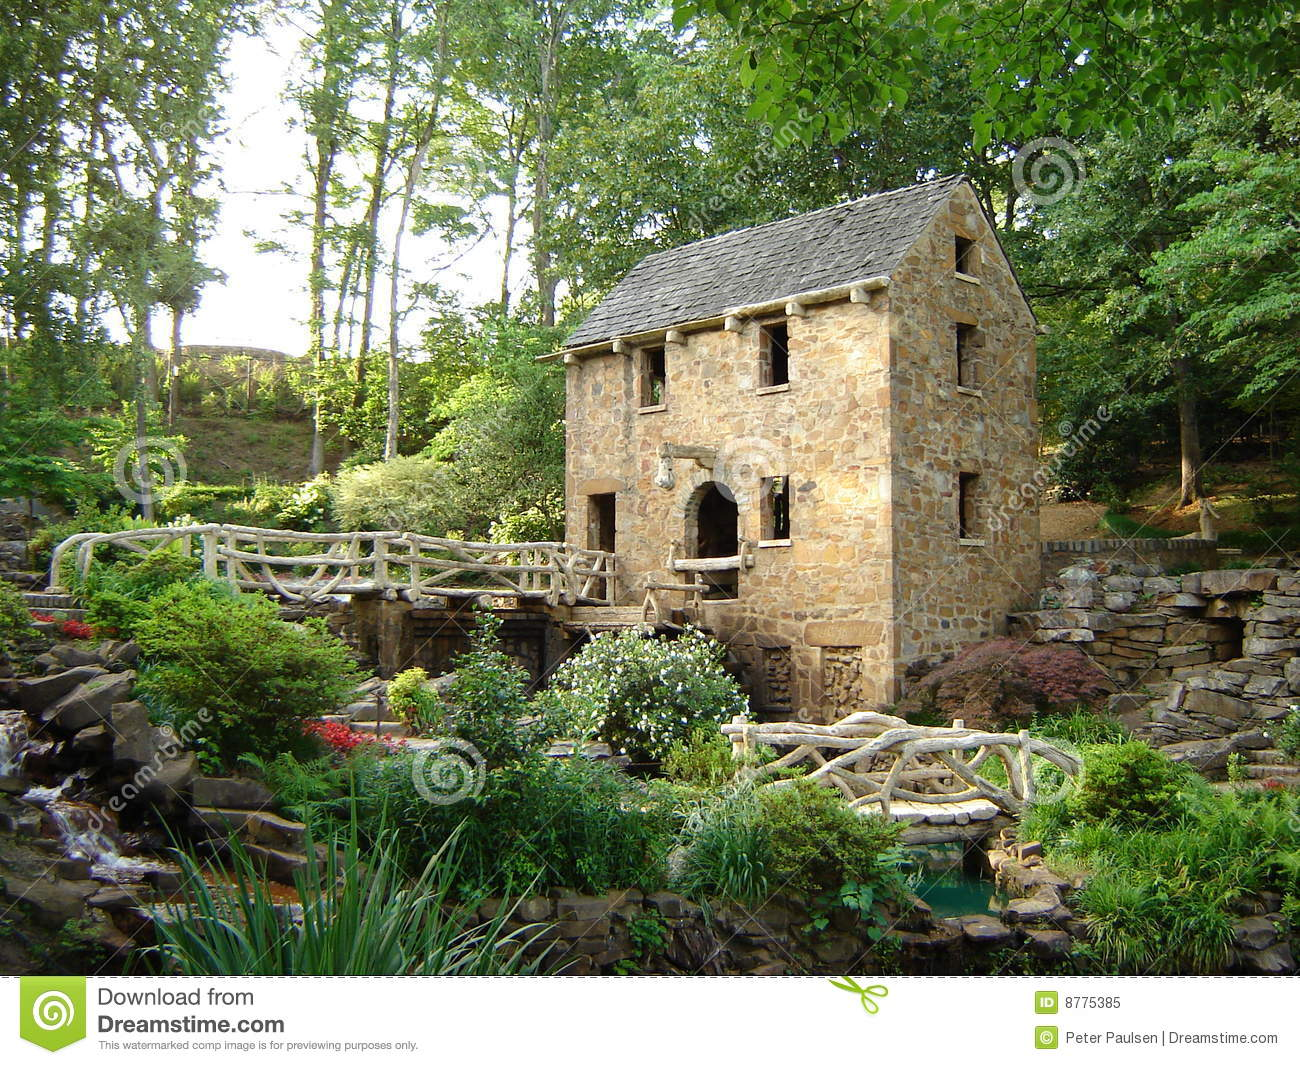 Gone With The Wind Movie Location, The Old Mill Royalty Free Stock Photo - Image: 8775385